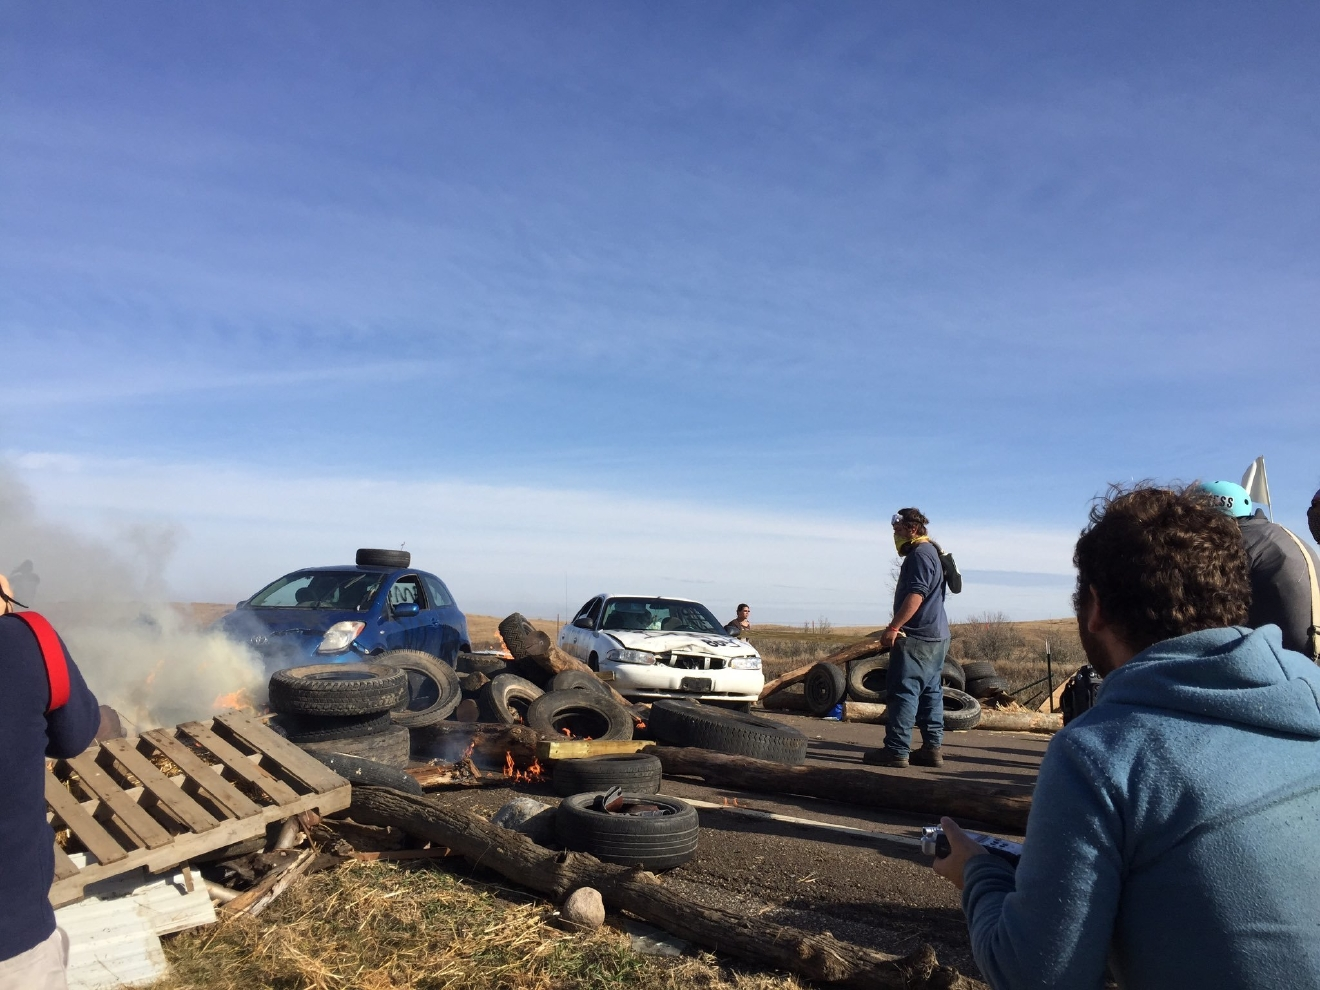 Dakota Access pipeline protesters confront law enforcement on Thursday, Oct. 27, 2016, near Cannon Ball, N.D. The months-long dispute over the four-state, $3.8 billion pipeline reached a crisis point when the protesters set up camp on land owned by pipeline developer Energy Transfer Partners. The disputed area is just to the north of a more permanent and larger encampment on federally-owned land where hundreds of protesters have camped for months.   (Caroline Grueskin/The Bismarck Tribune via AP)